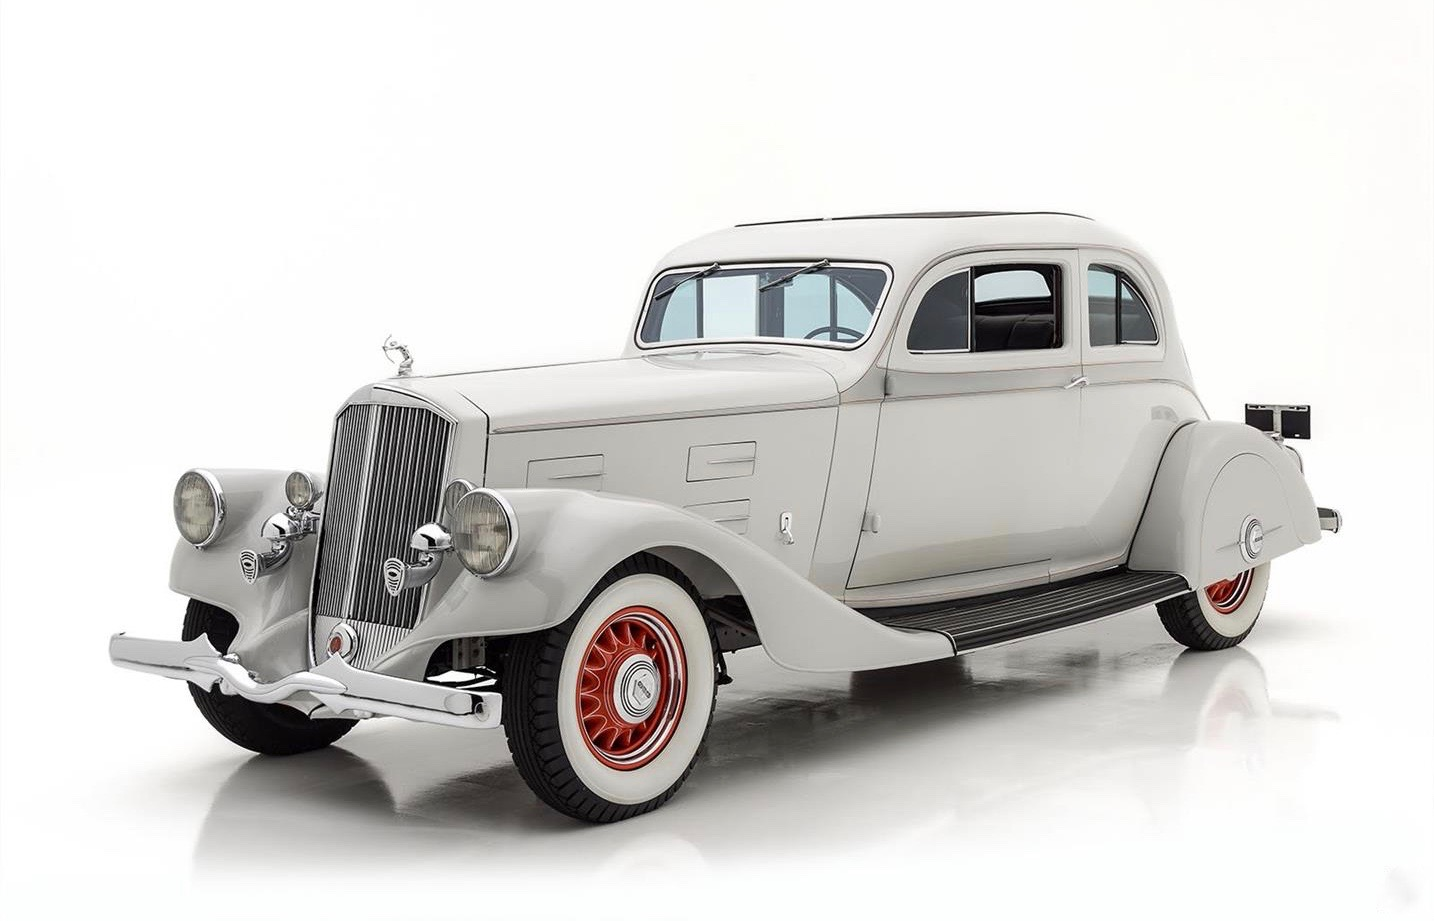 1934 Pierce-Arrow was based on stunning early concept car